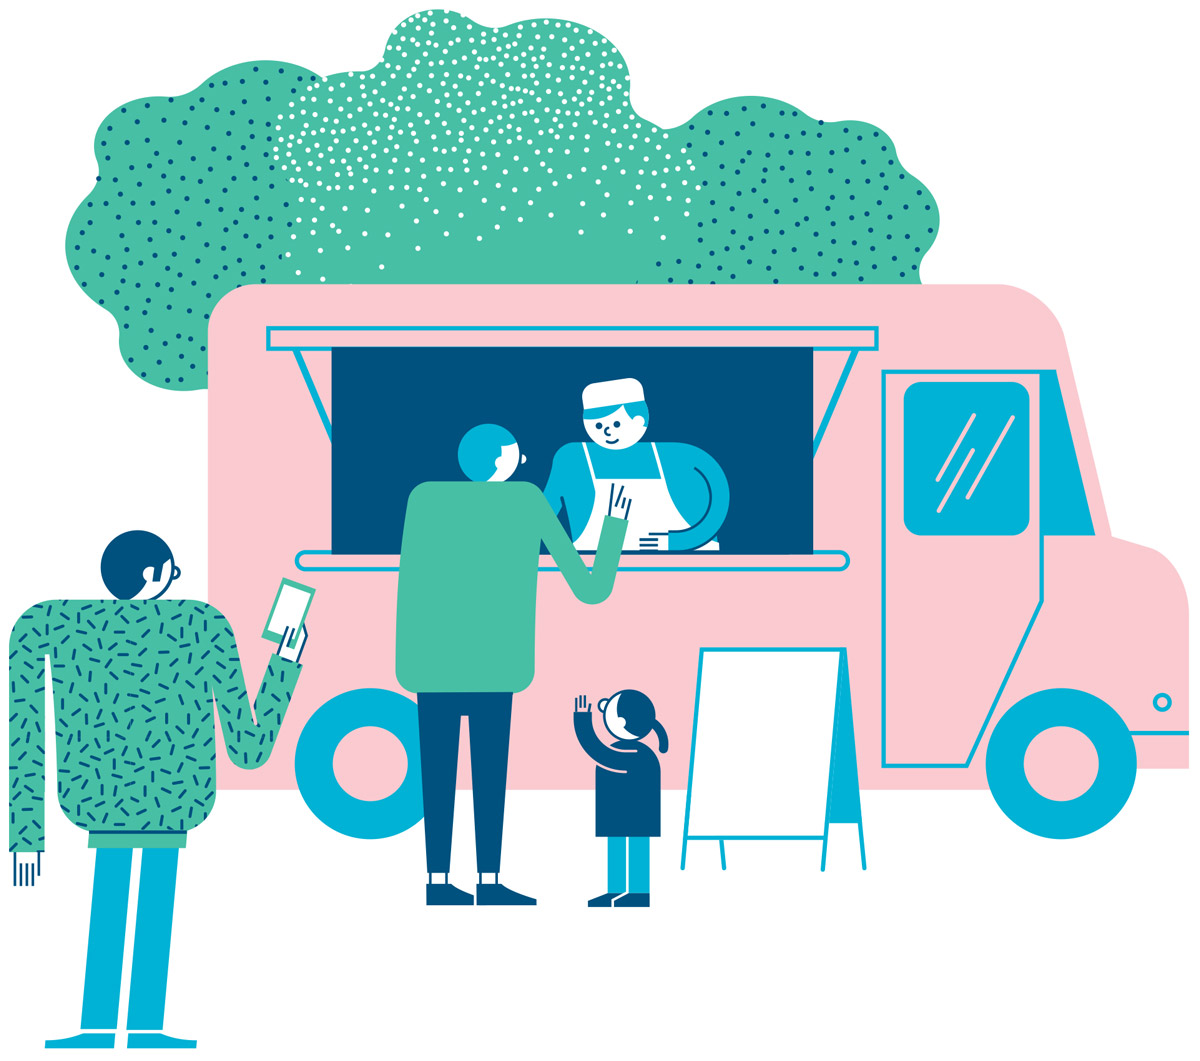 Illustration of a food truck for Green City, a real estate development project in Zürich, Switzerland.